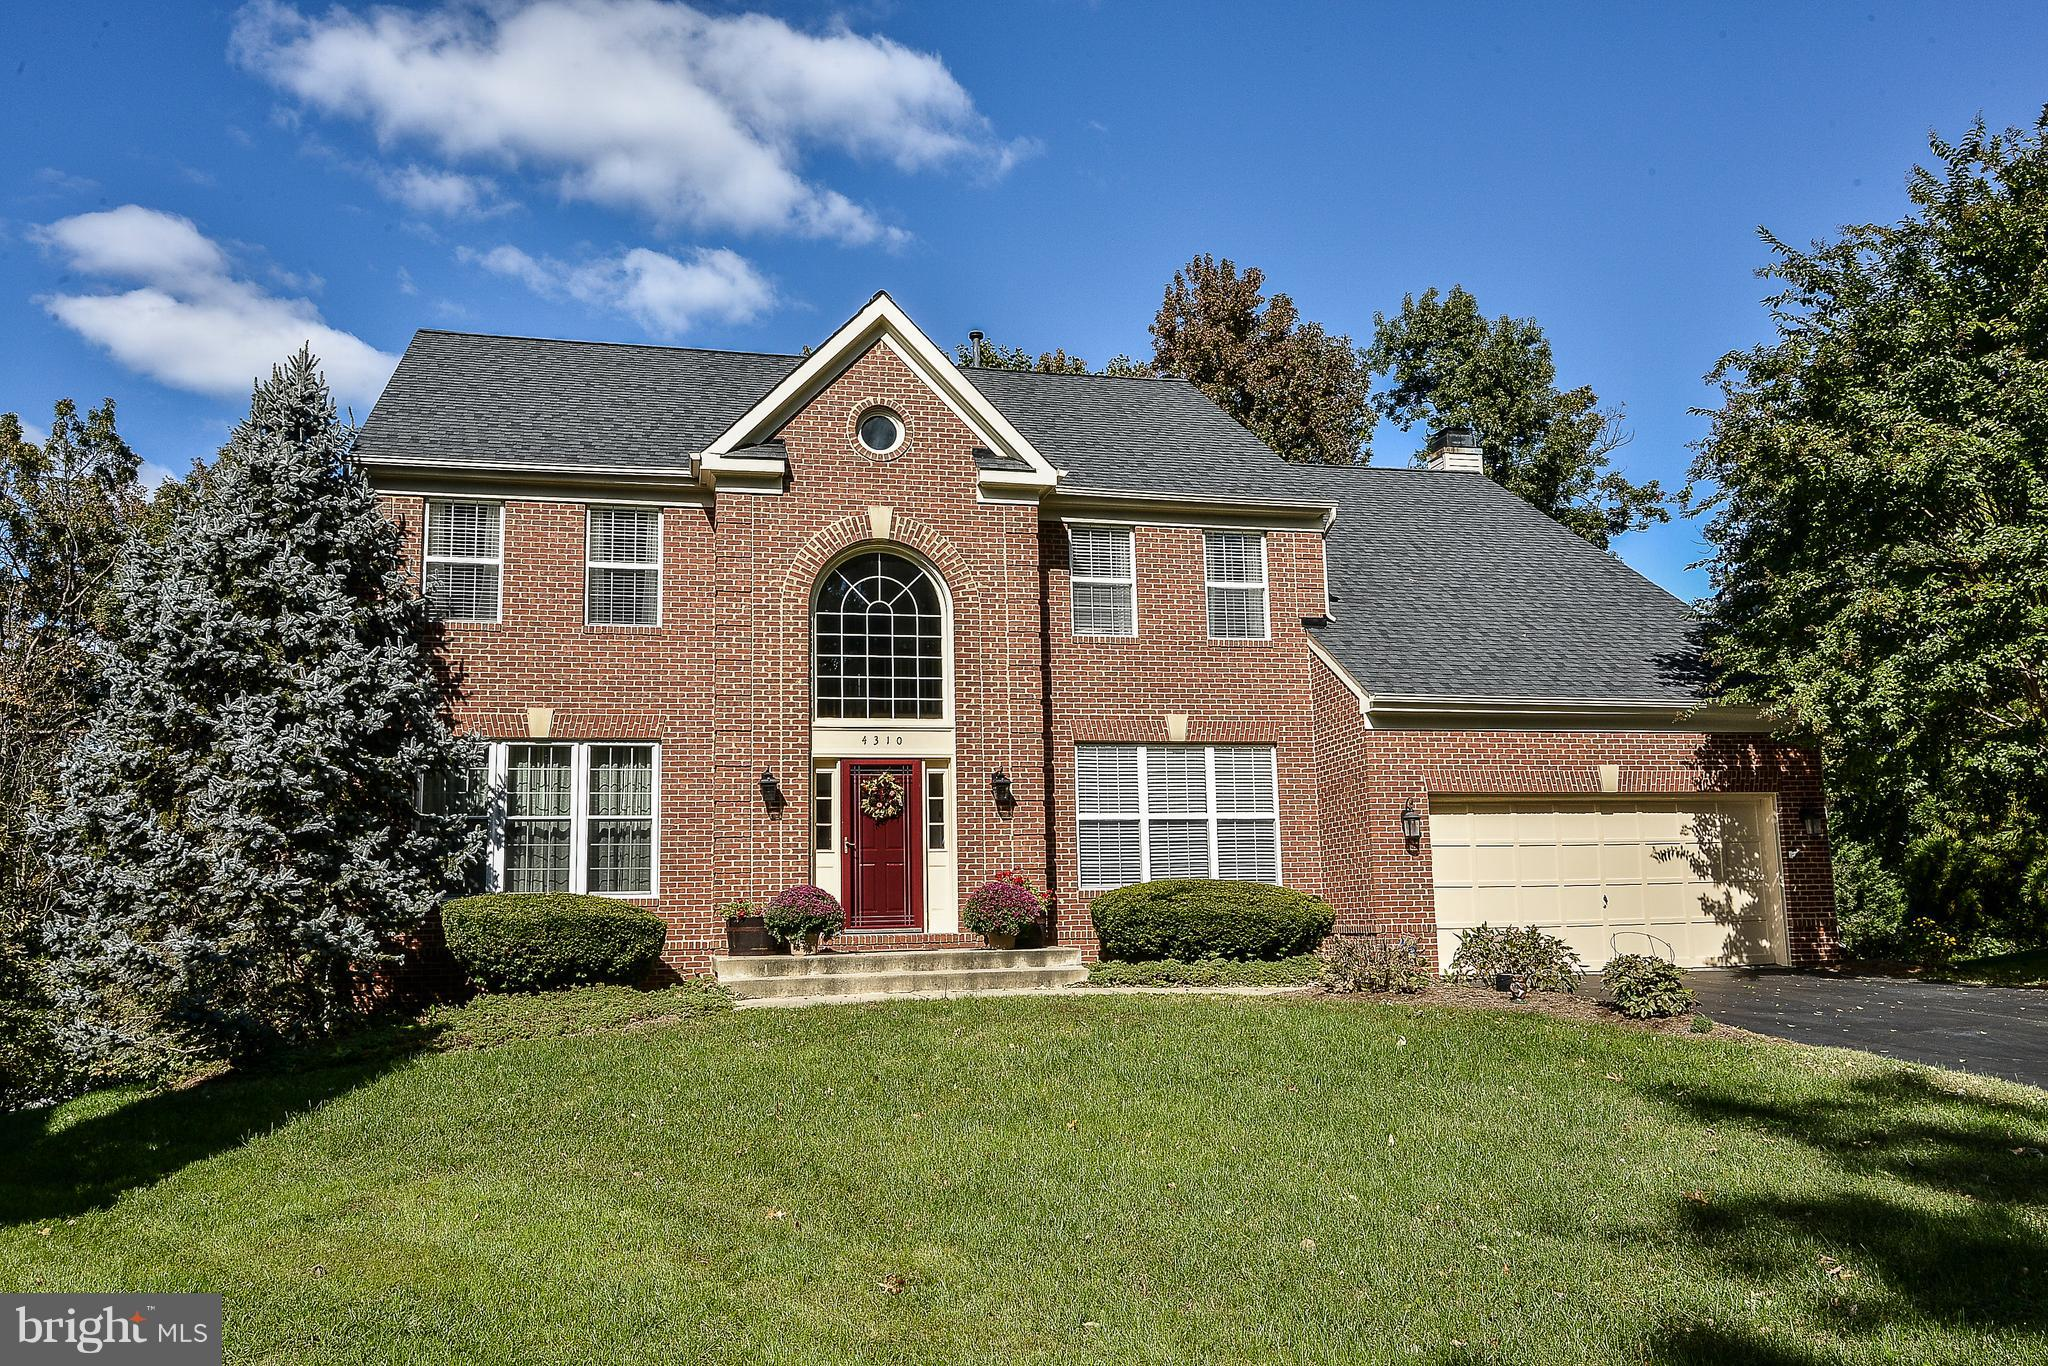 Seller Motivated!! Repriced to $819,900! Open Sun 11/18 from 2-4. Refreshed & Upgraded Brick Colonial! 2 Story Foyer.  Main Level Hardwoods. Kitchen w/ updated appliances, countertops & Breakfast nook. Spacious Fam RM w/ Gas Fireplace & french door to Deck. Master BR w/ Sitting RM, Custom Walk-in Closet & Bath w/ soaking tub, shower & Dual Vanities. The LL features Rec room, Game room w/ wet bar & 5th Bdrm. Huge rear yard